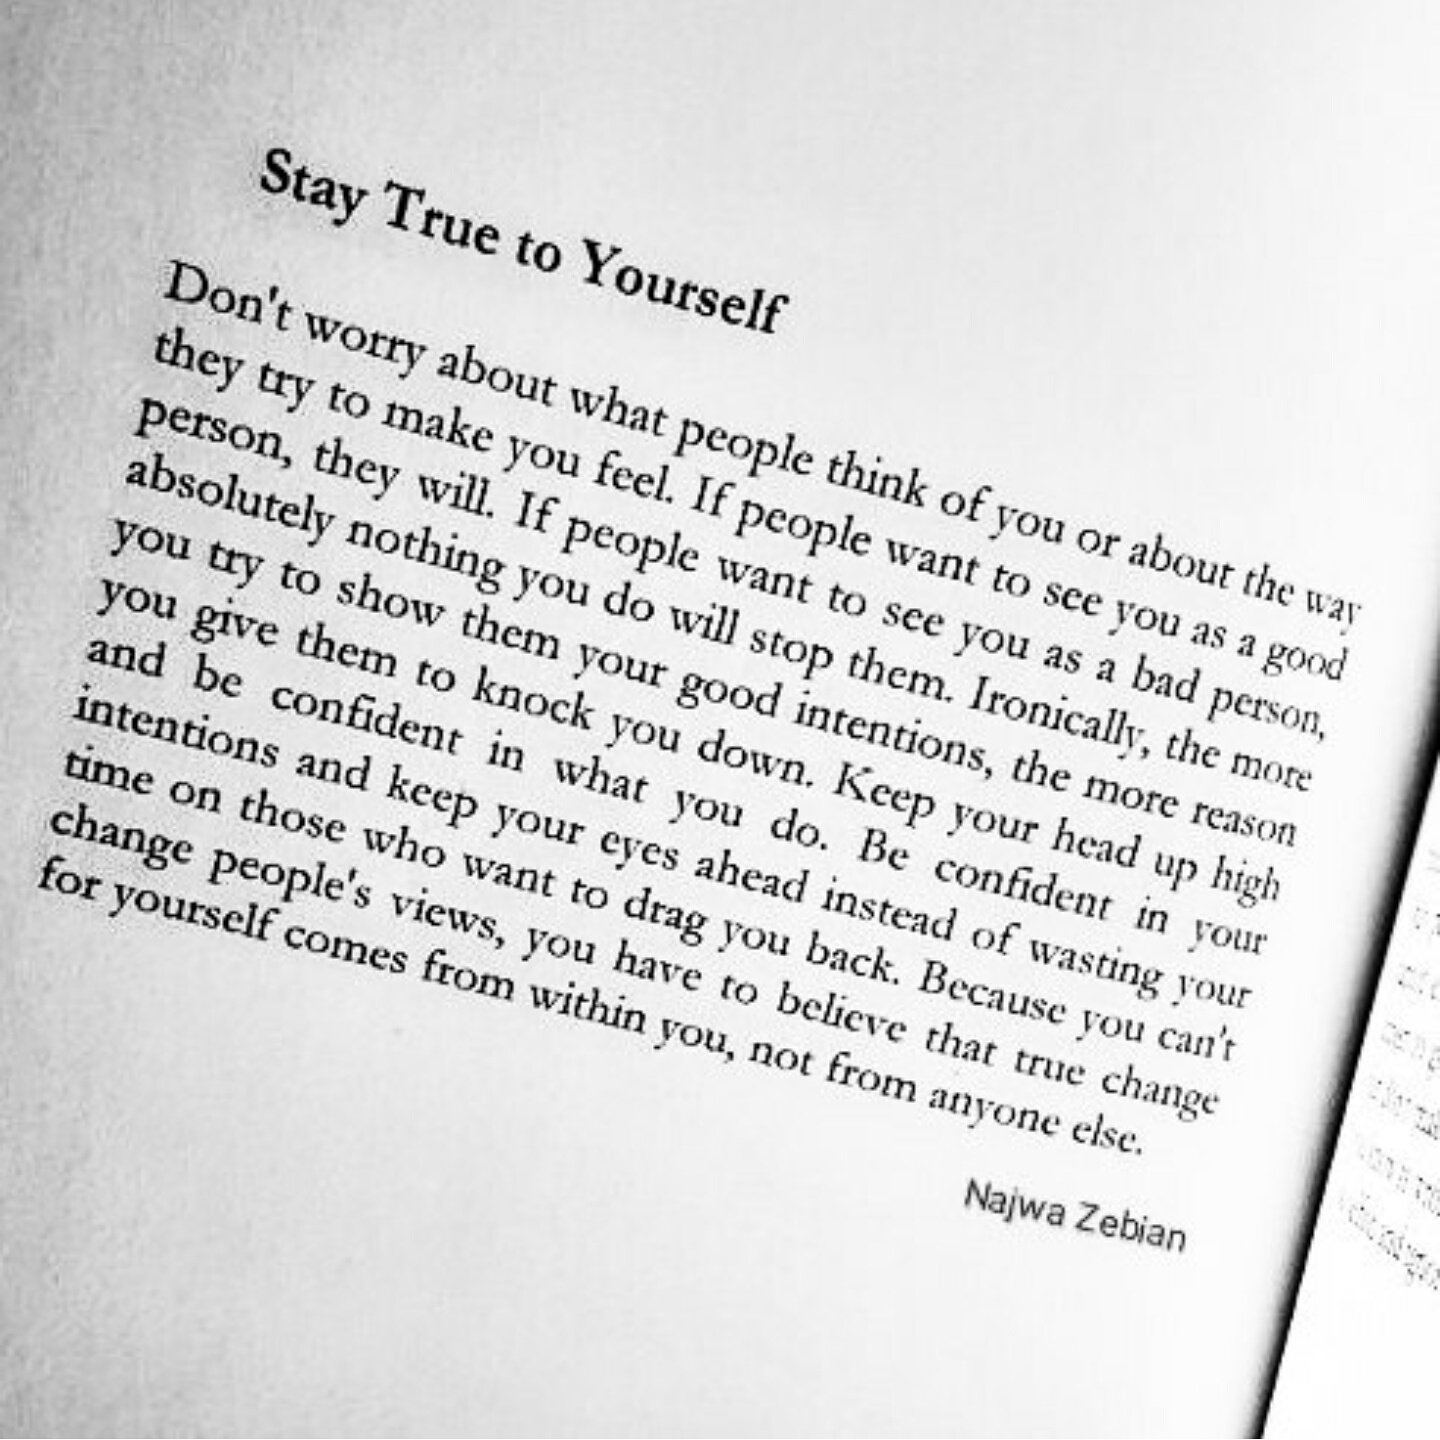 Najwa Zebian On Twitter Stay True To Yourself Mindplatter